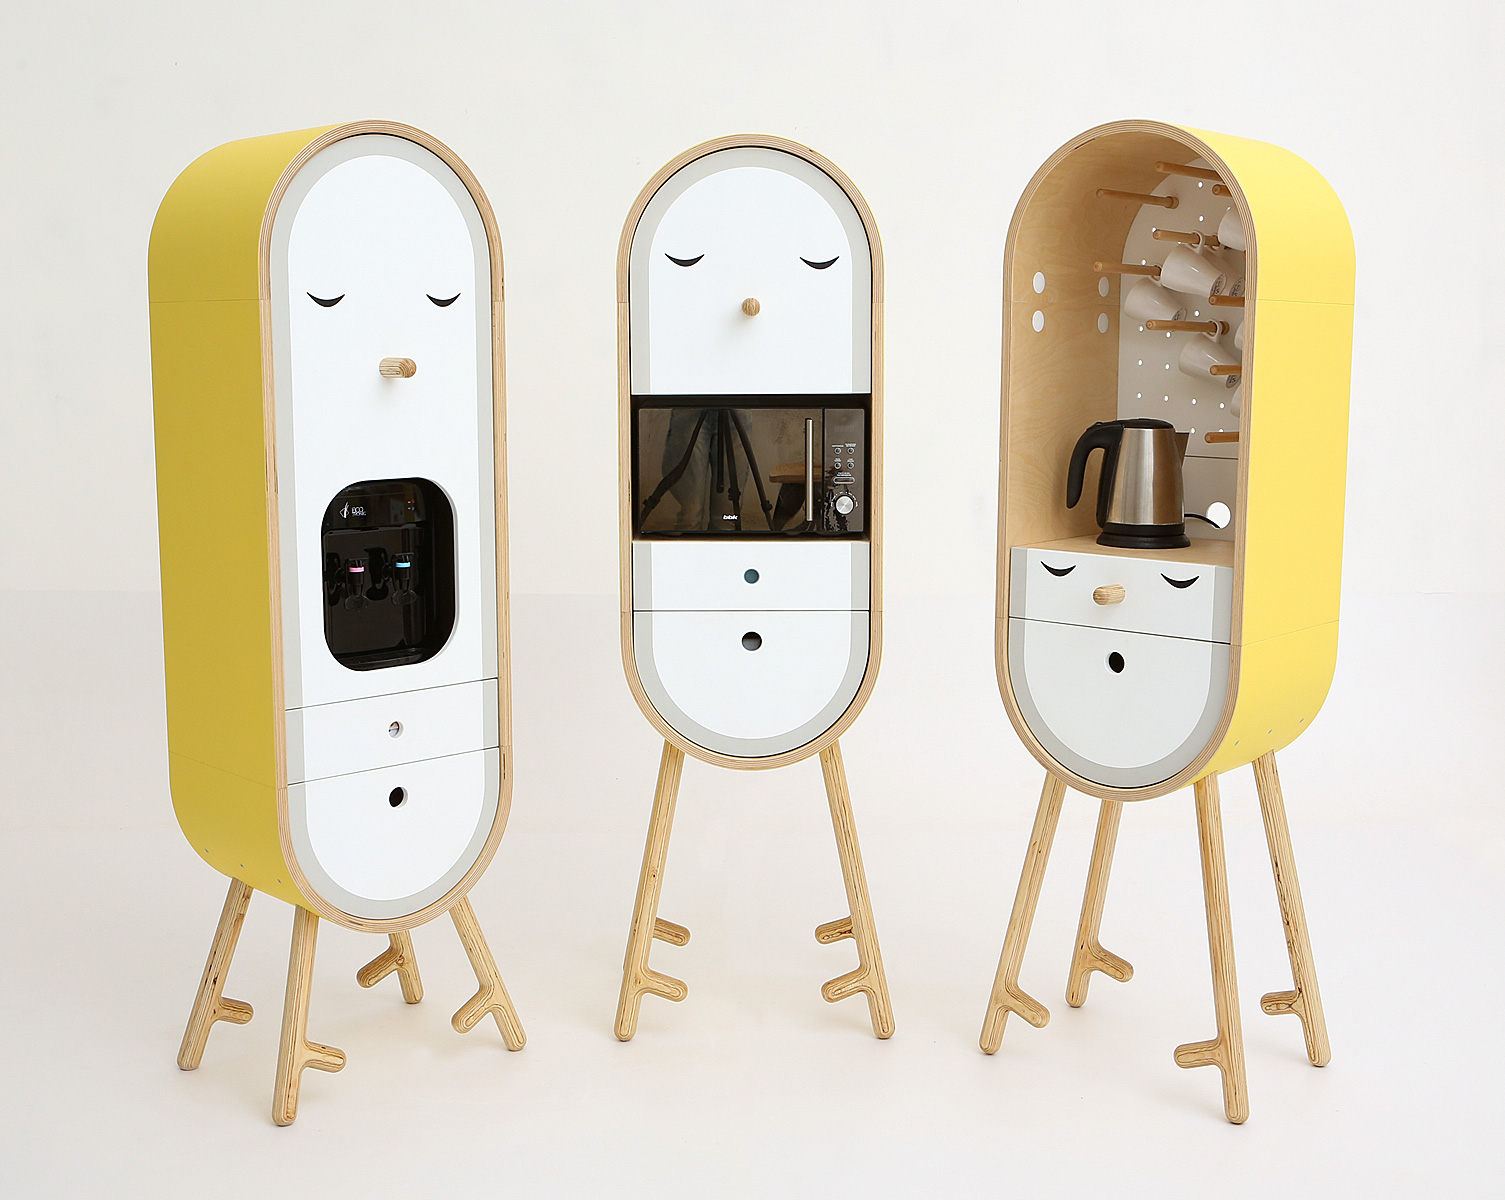 LO LO The capsular microkitchen lllooch on Behance